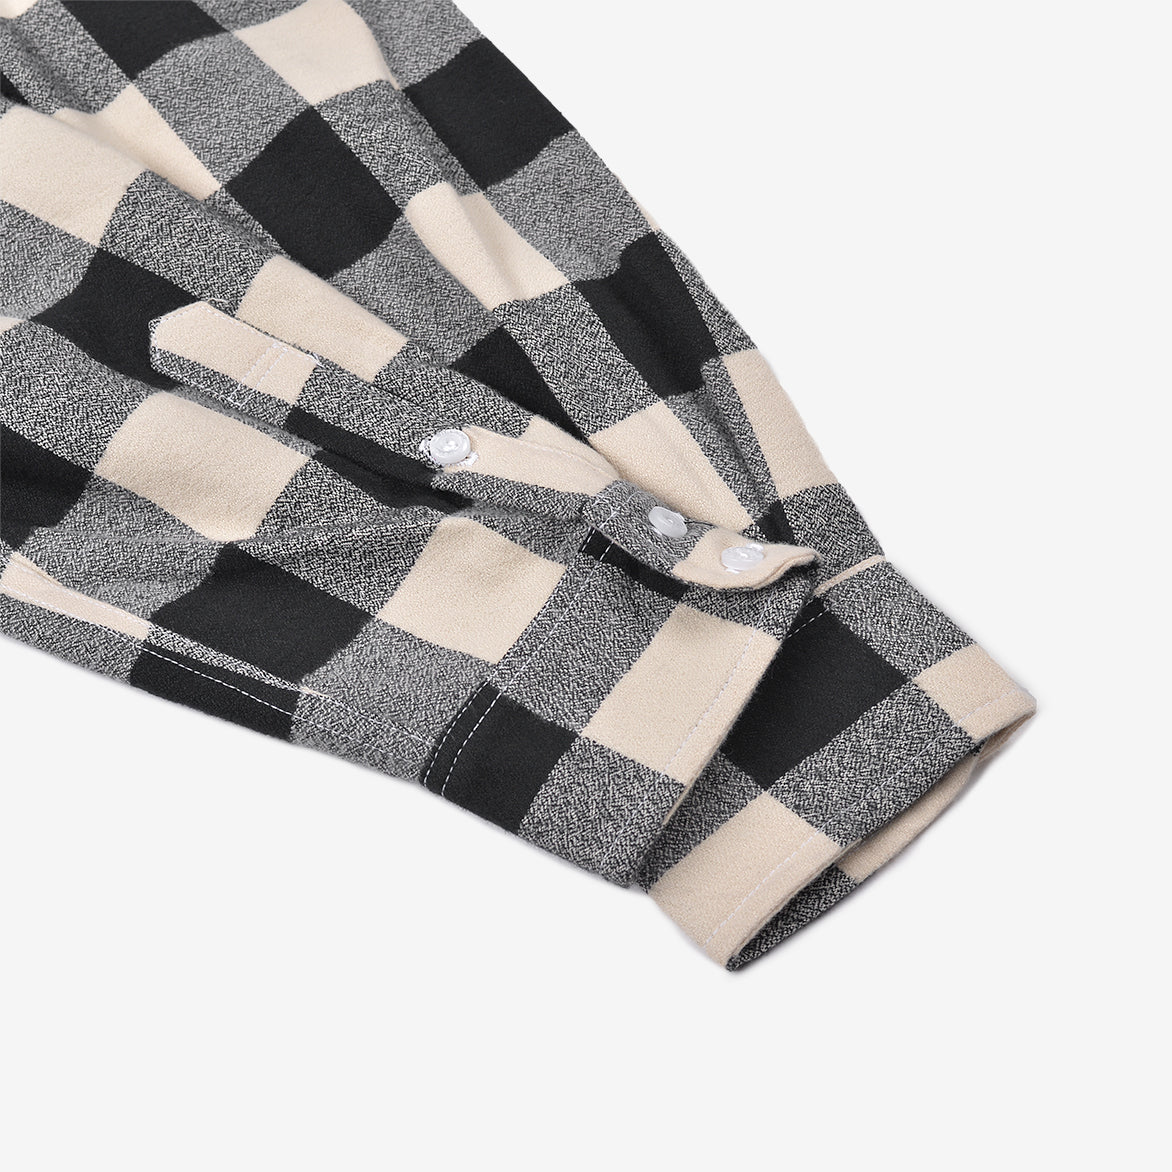 BUFFALO CHECK FLANNEL - IVORY